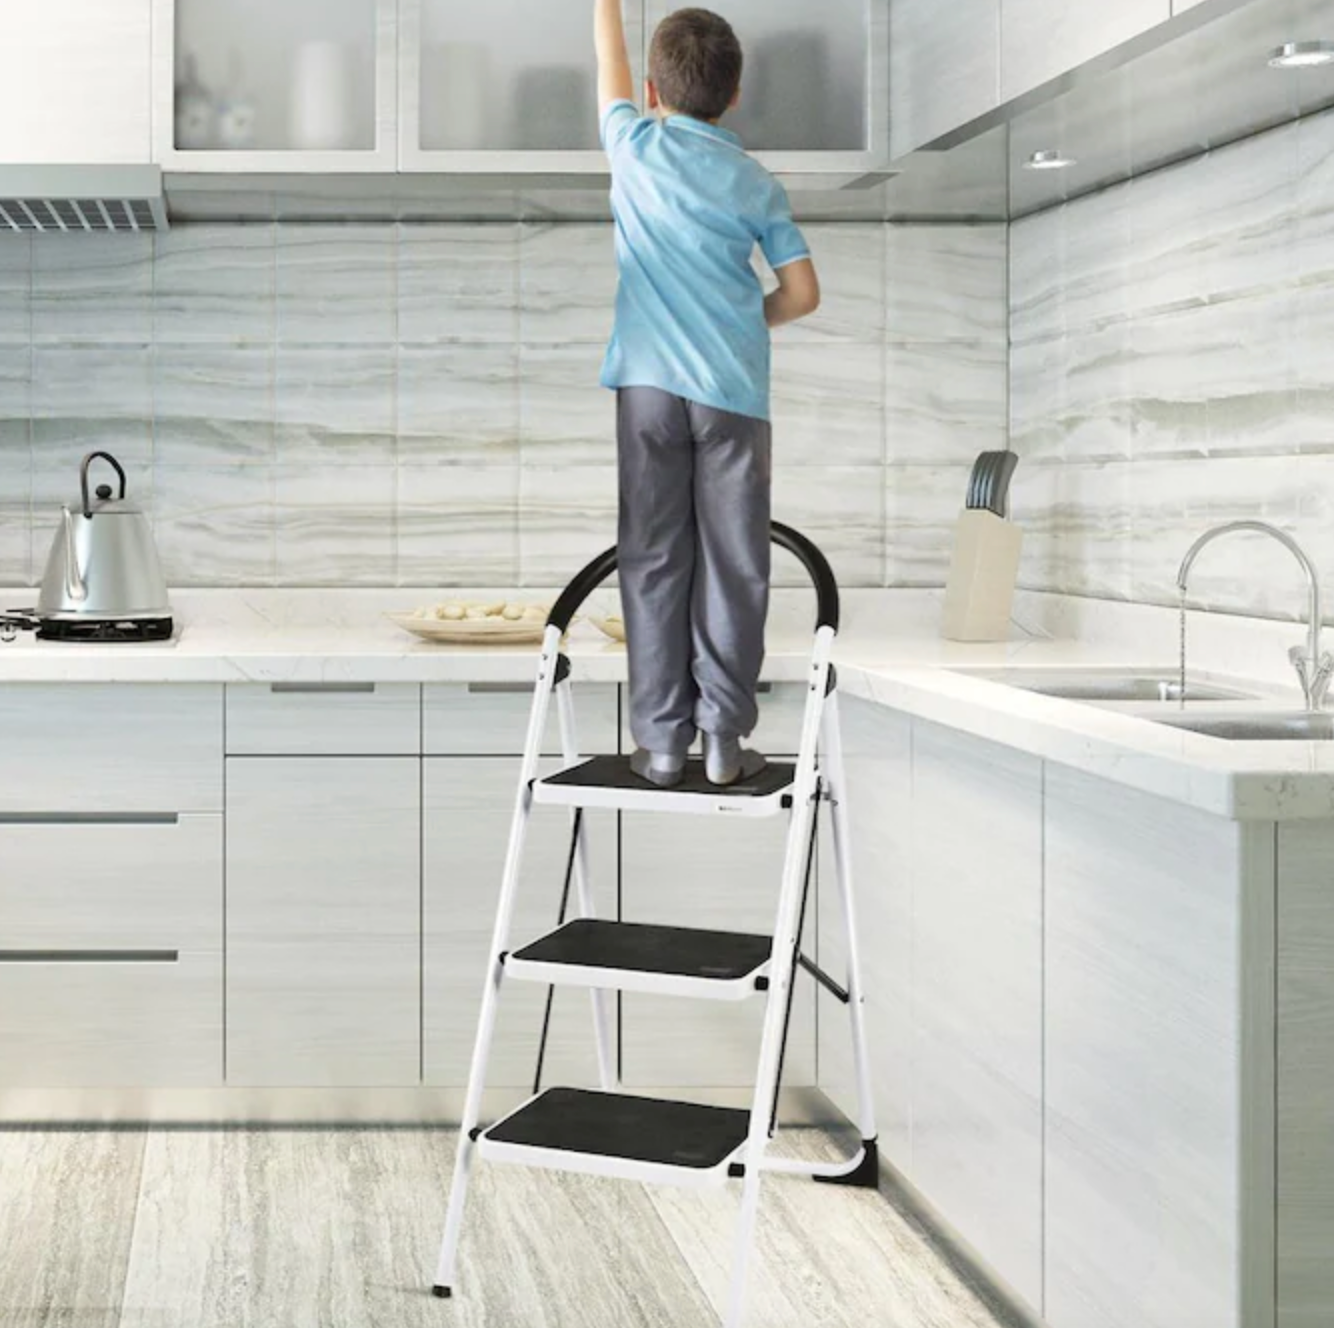 a young person standing on the step ladder in a kitchen